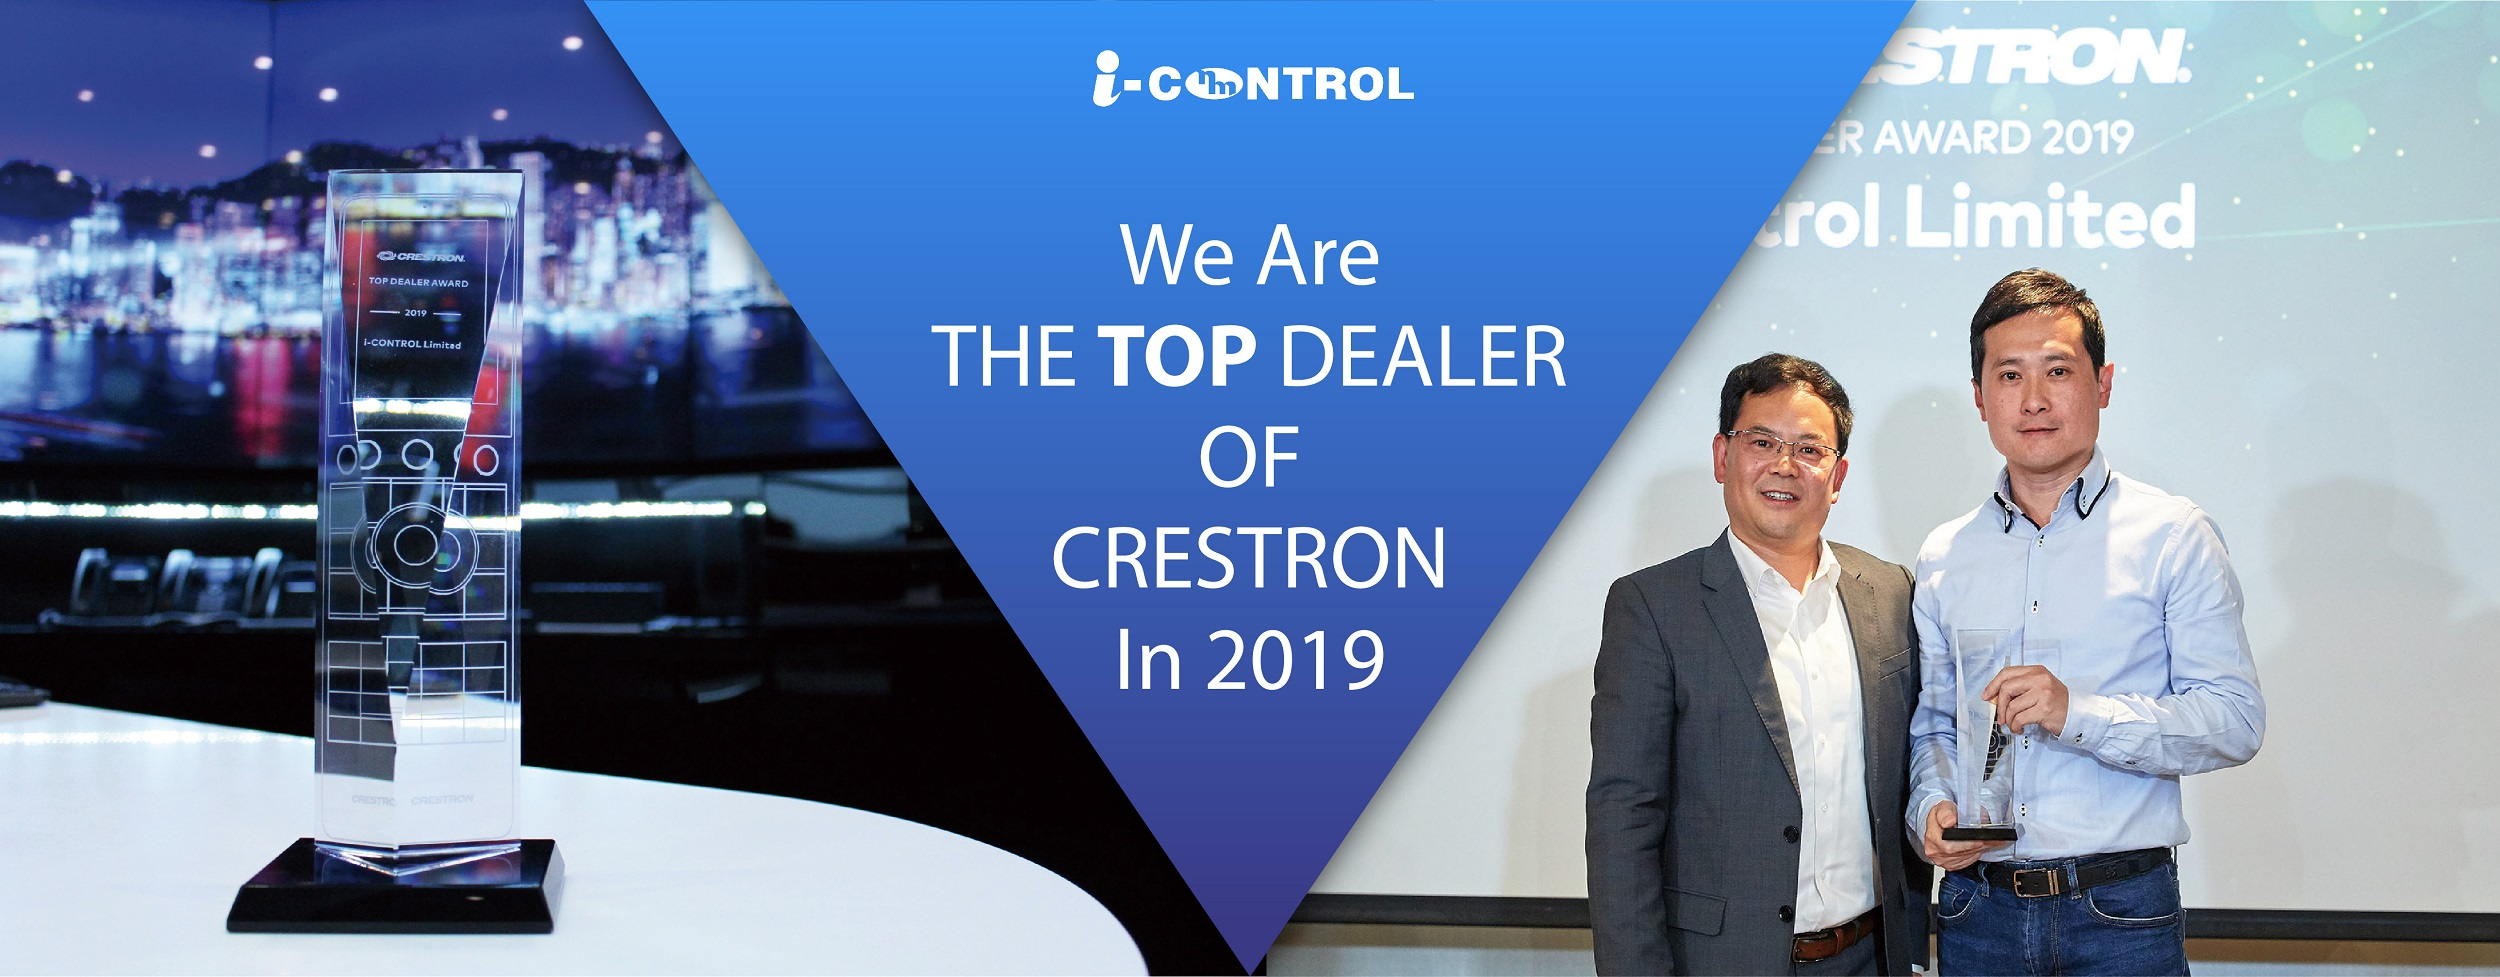 The Top dealer of Crestron